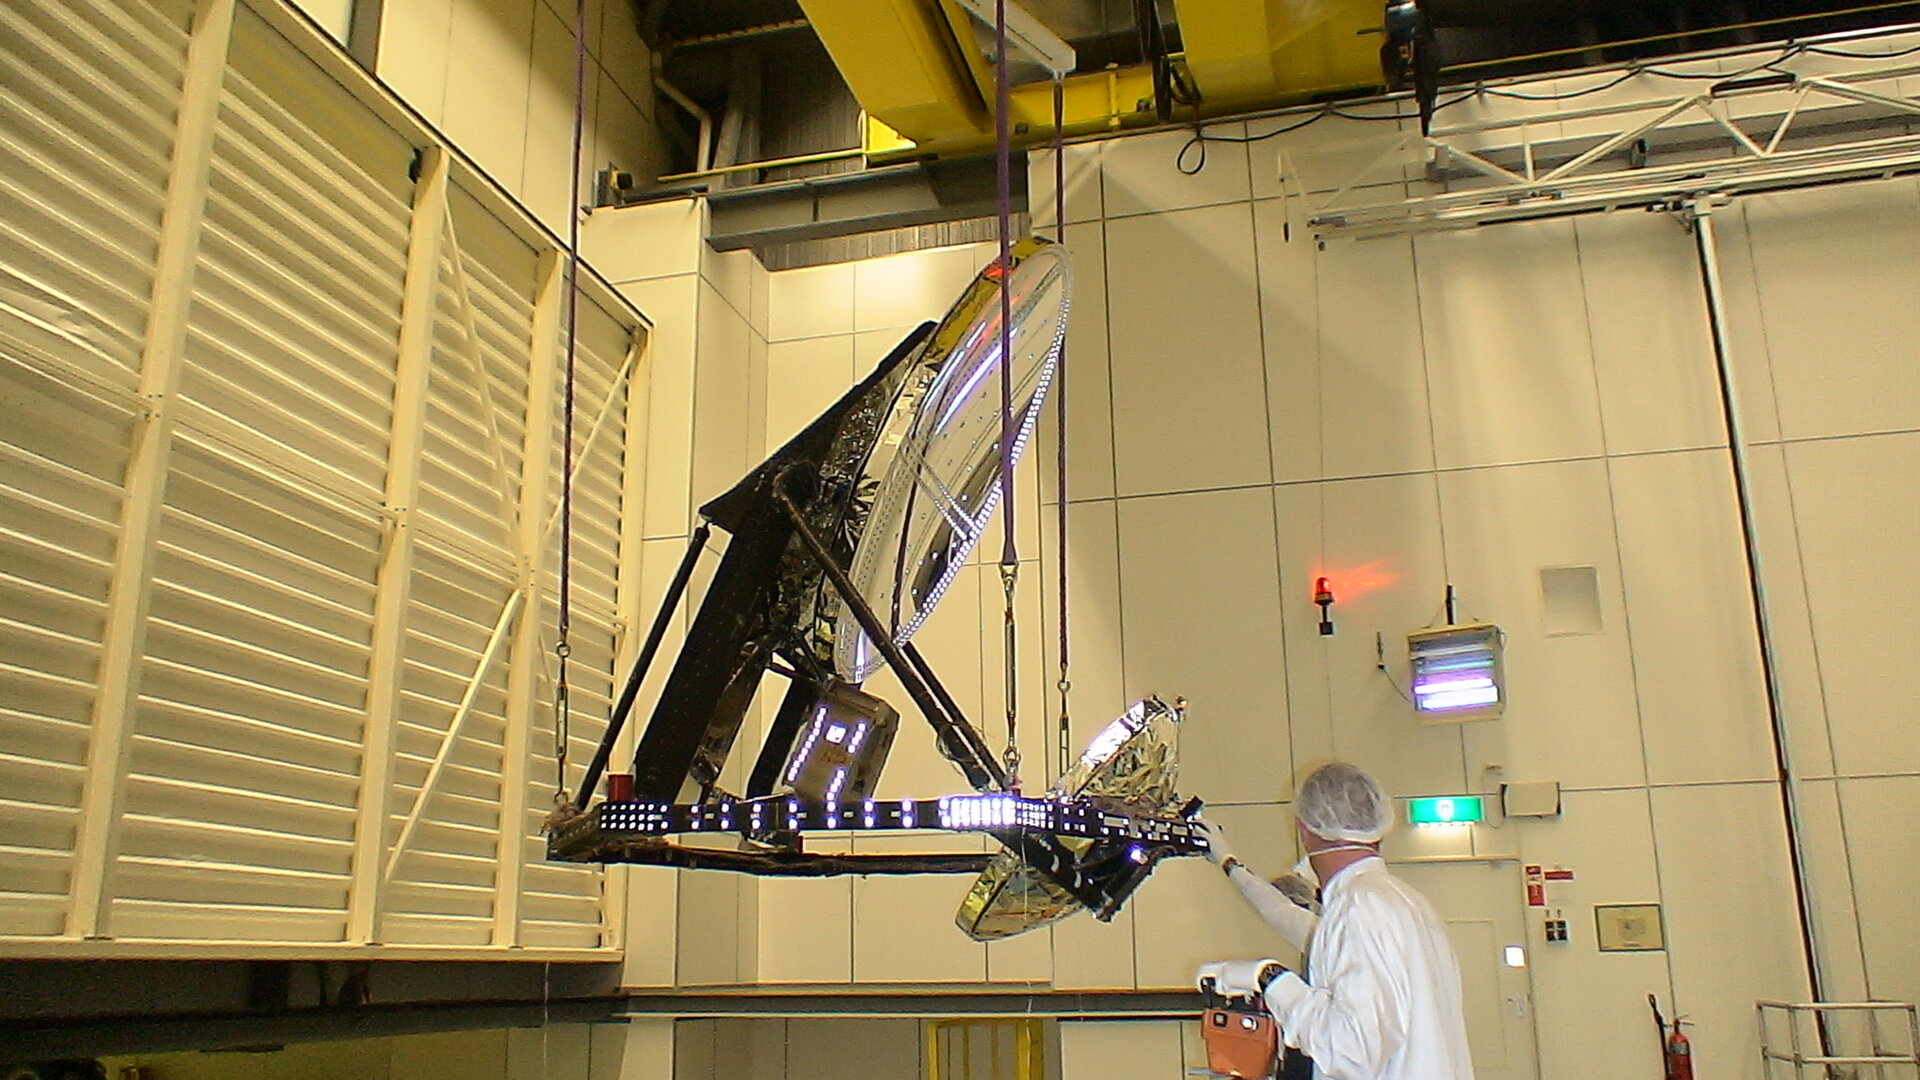 Planck's mirrors are tested in the Large Space Simulator